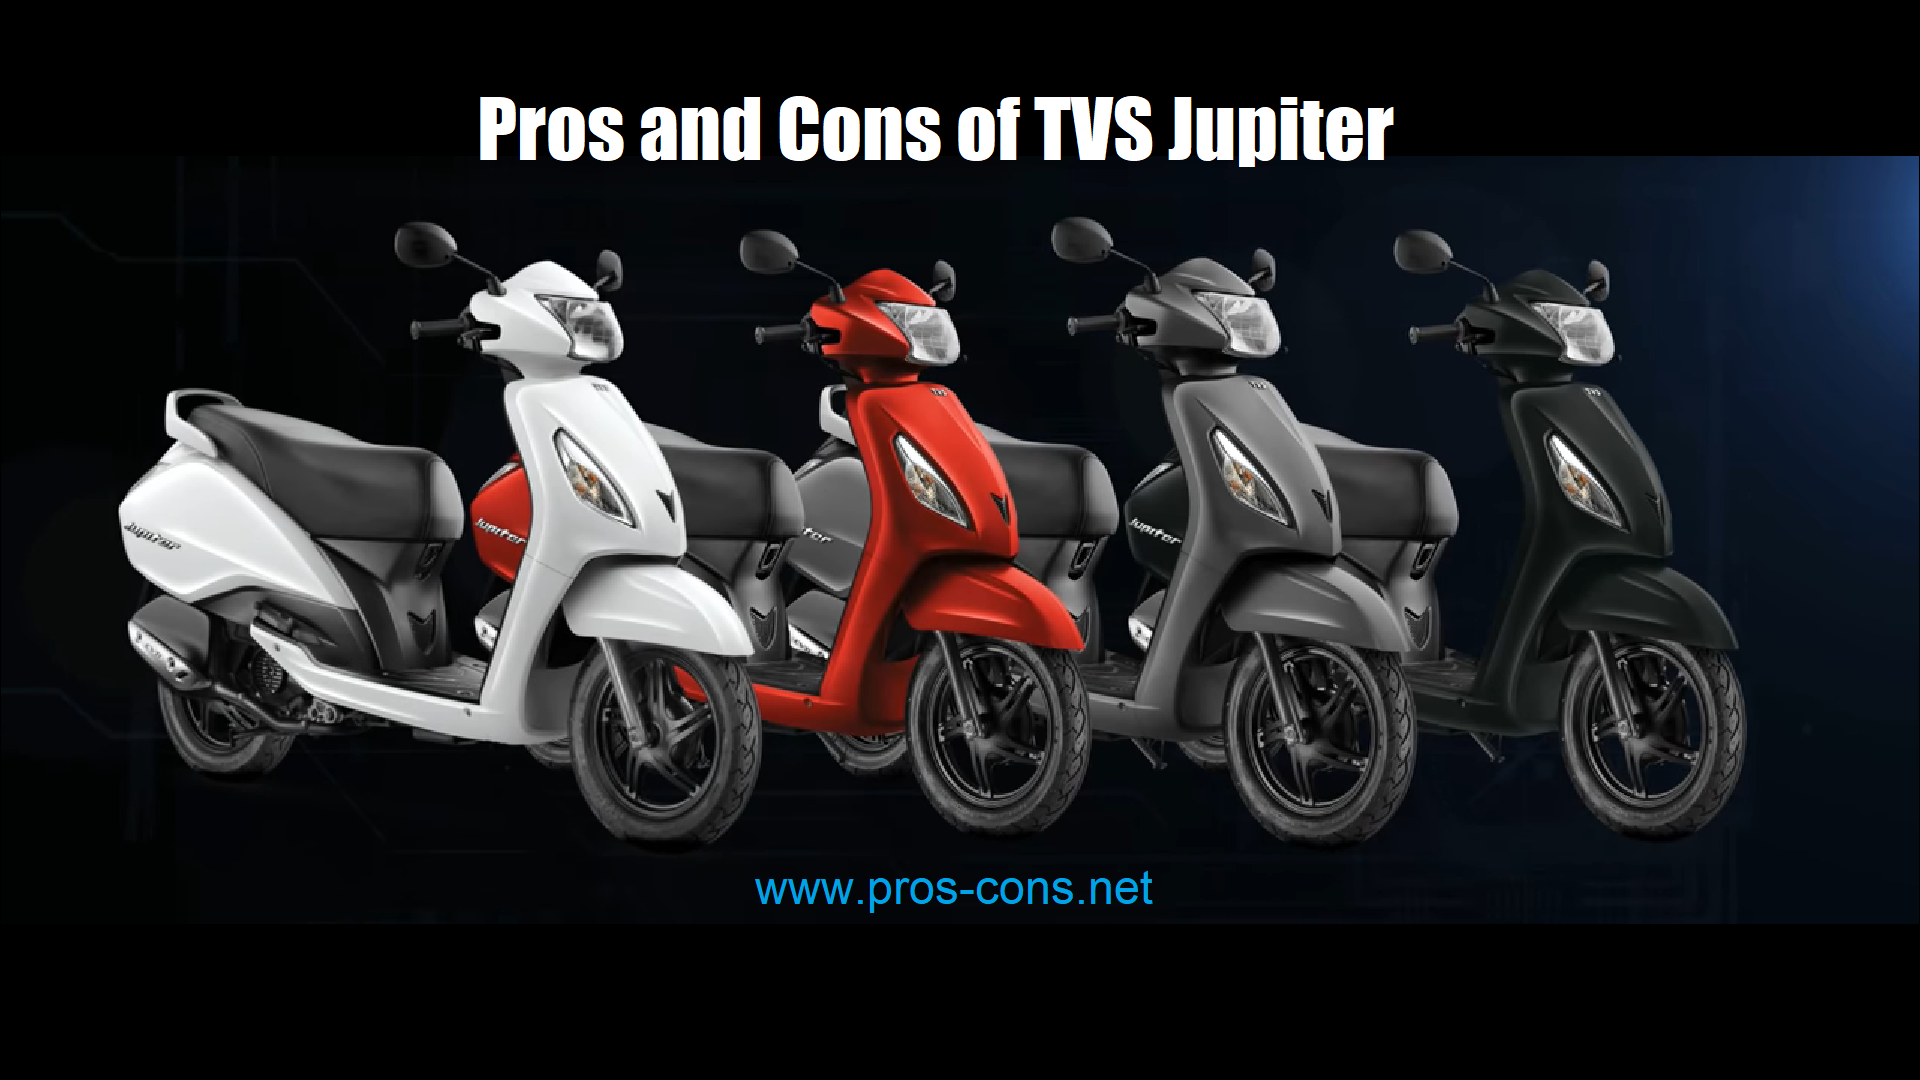 pros and cons of TVS Jupiter